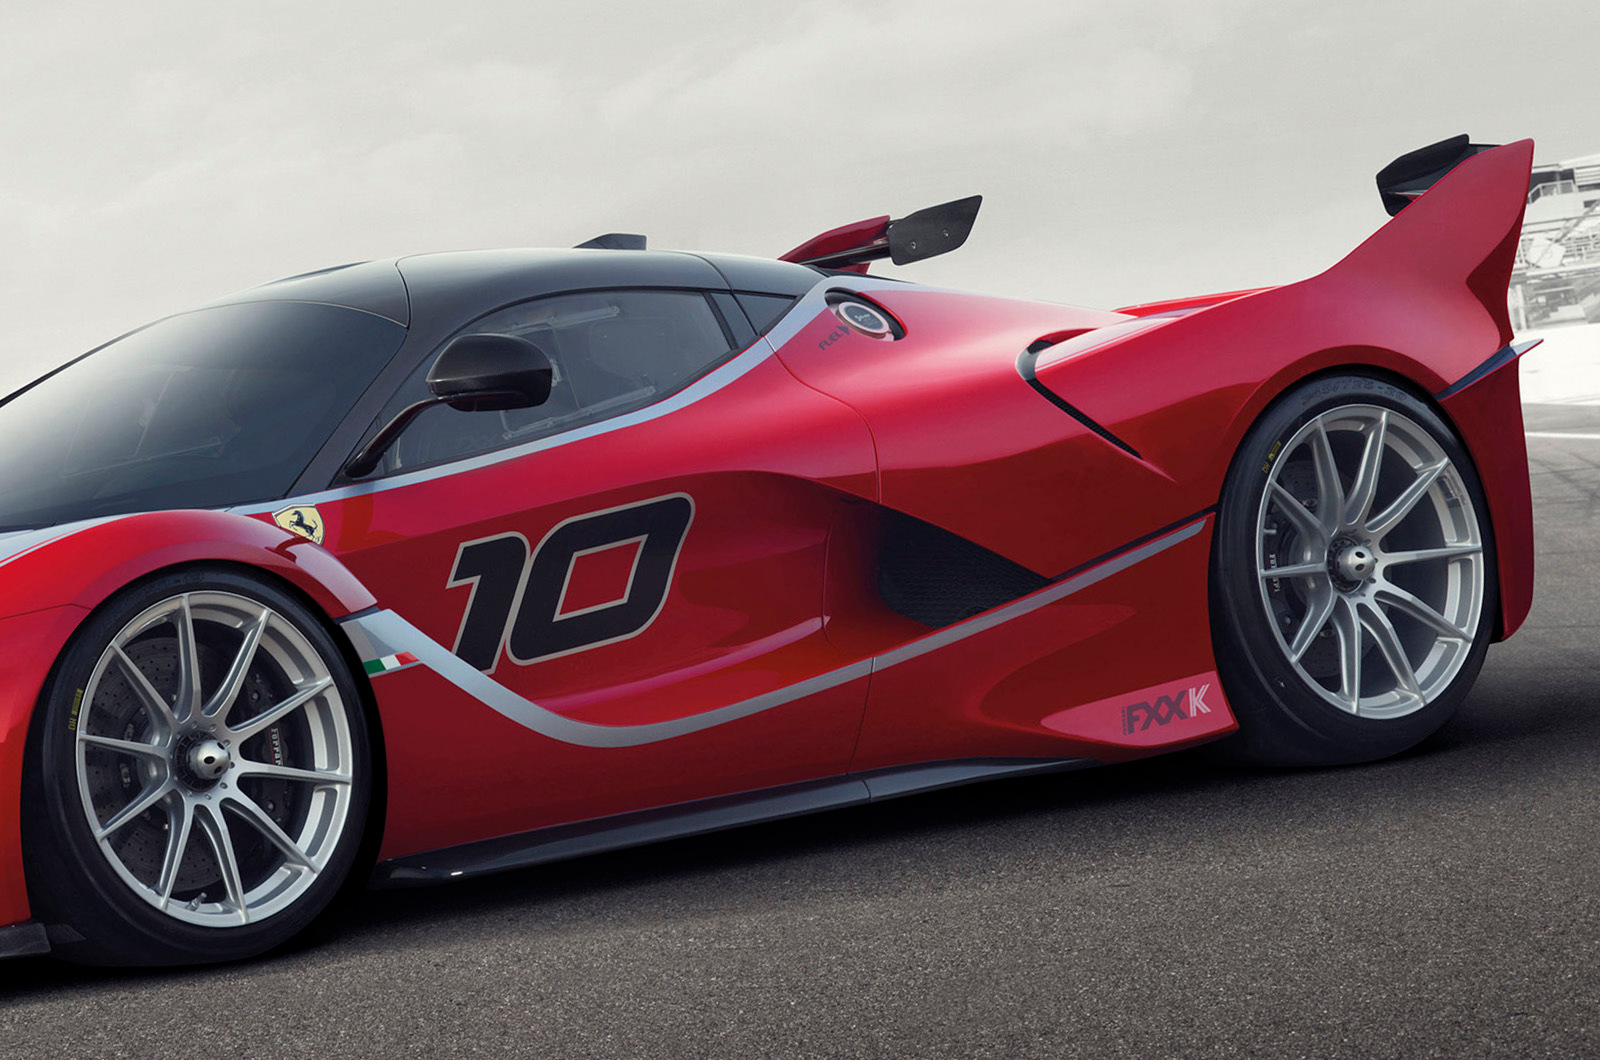 ferrari pr sente laferrari fxx k de 1050ch plan te. Black Bedroom Furniture Sets. Home Design Ideas